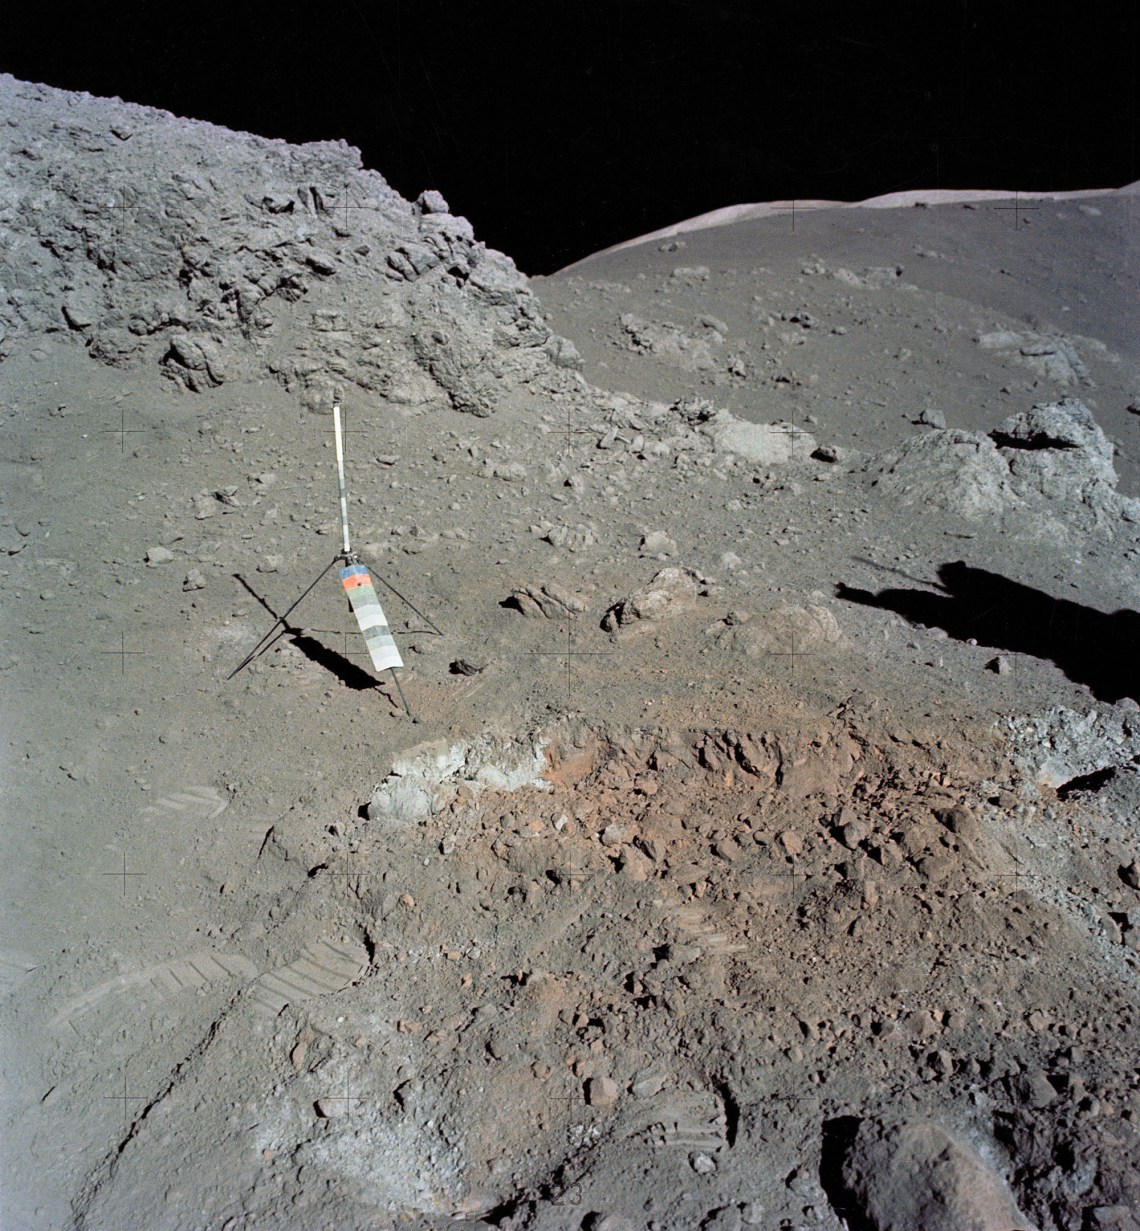 Harrison Schmitt discovered the 'orange soil' on the Moon shown above. Photo: NASA